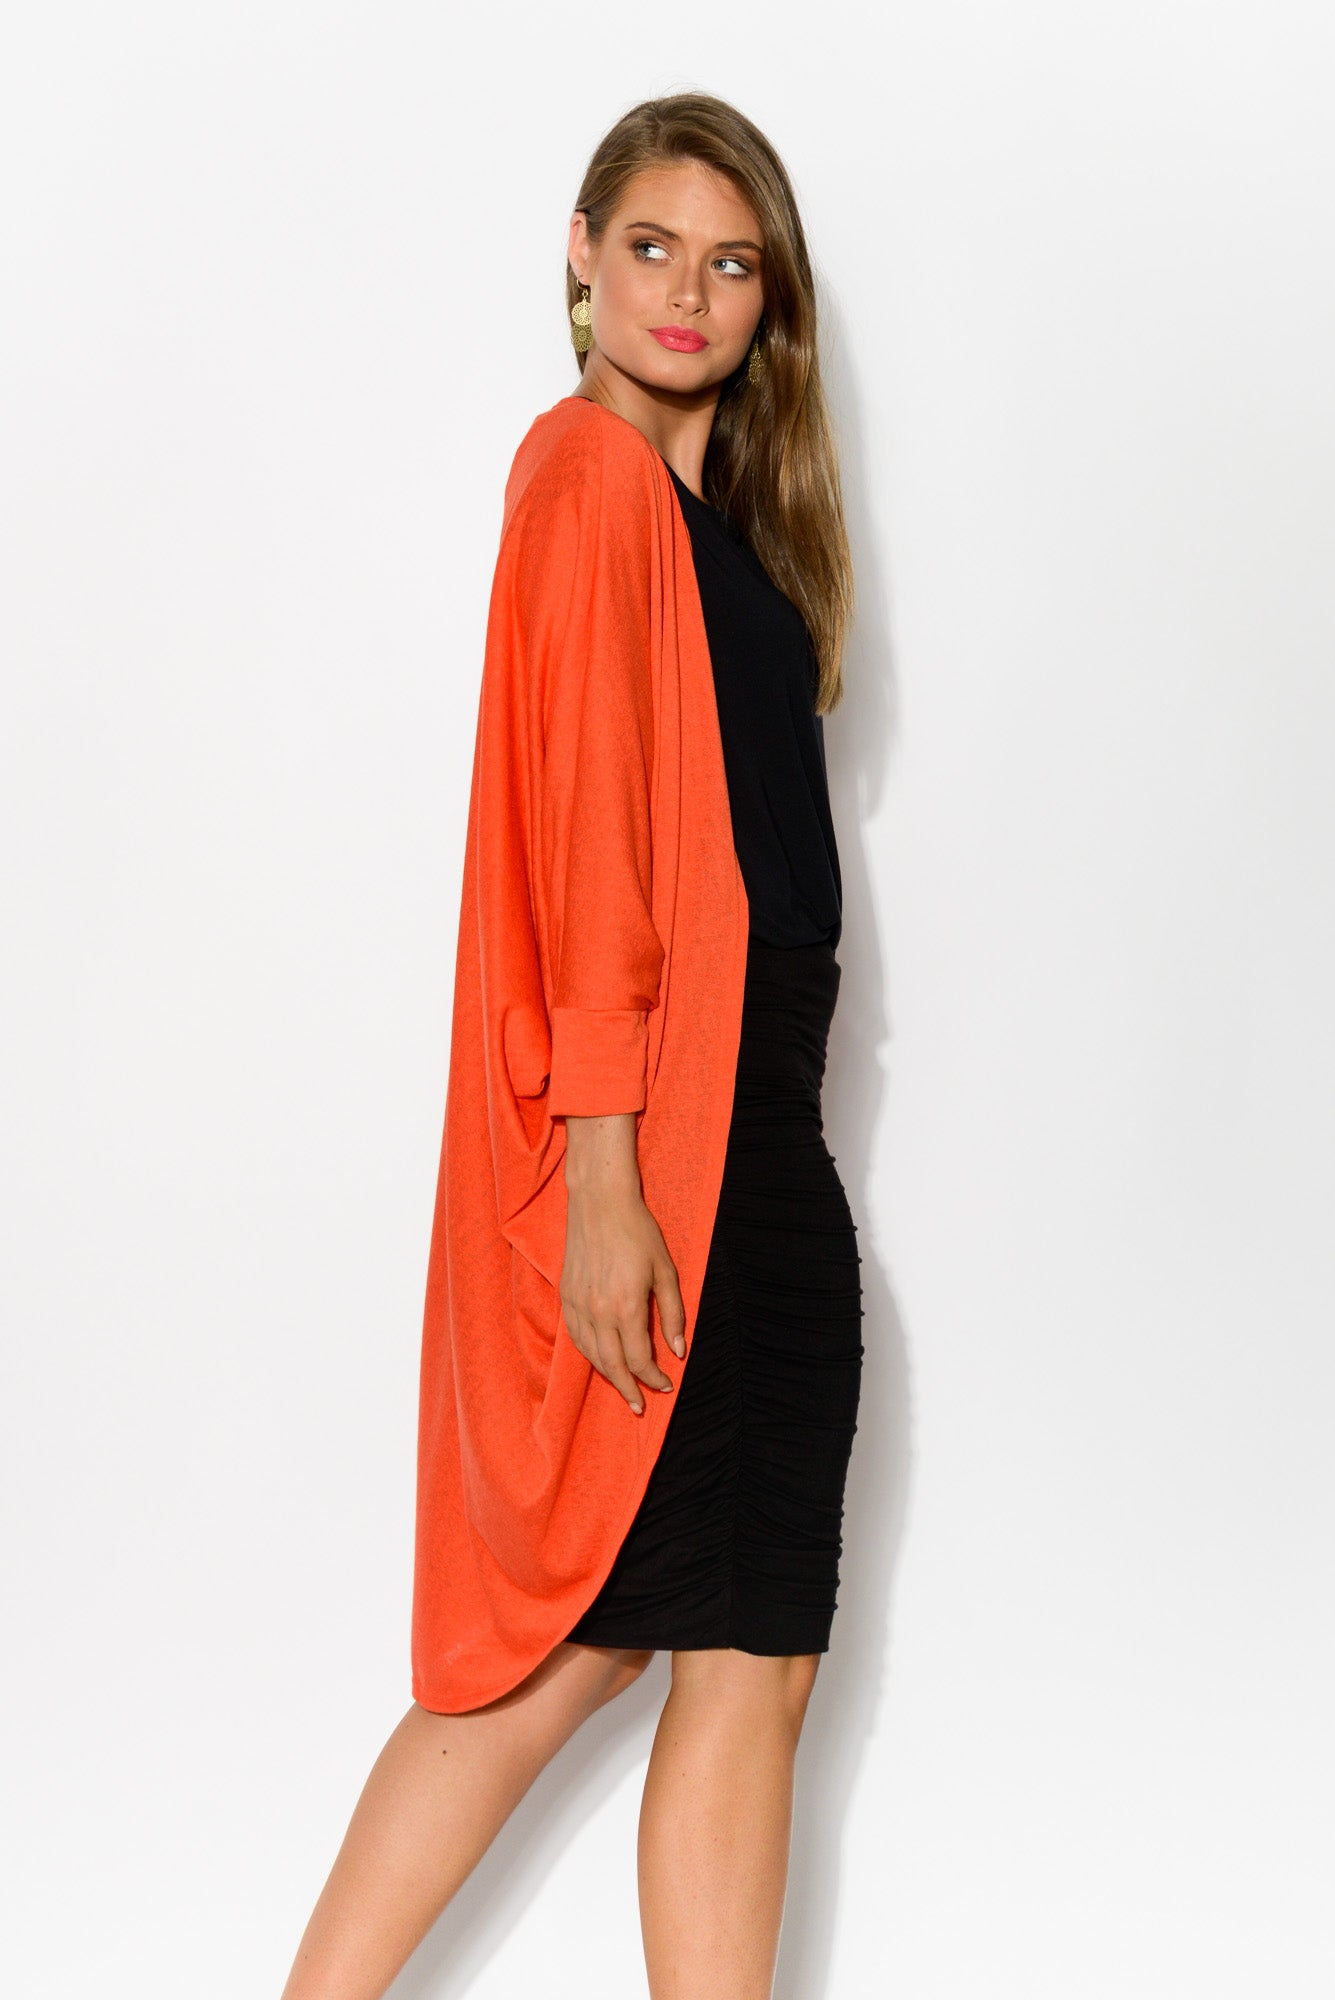 Santorini Orange Drape Cardigan - Blue Bungalow